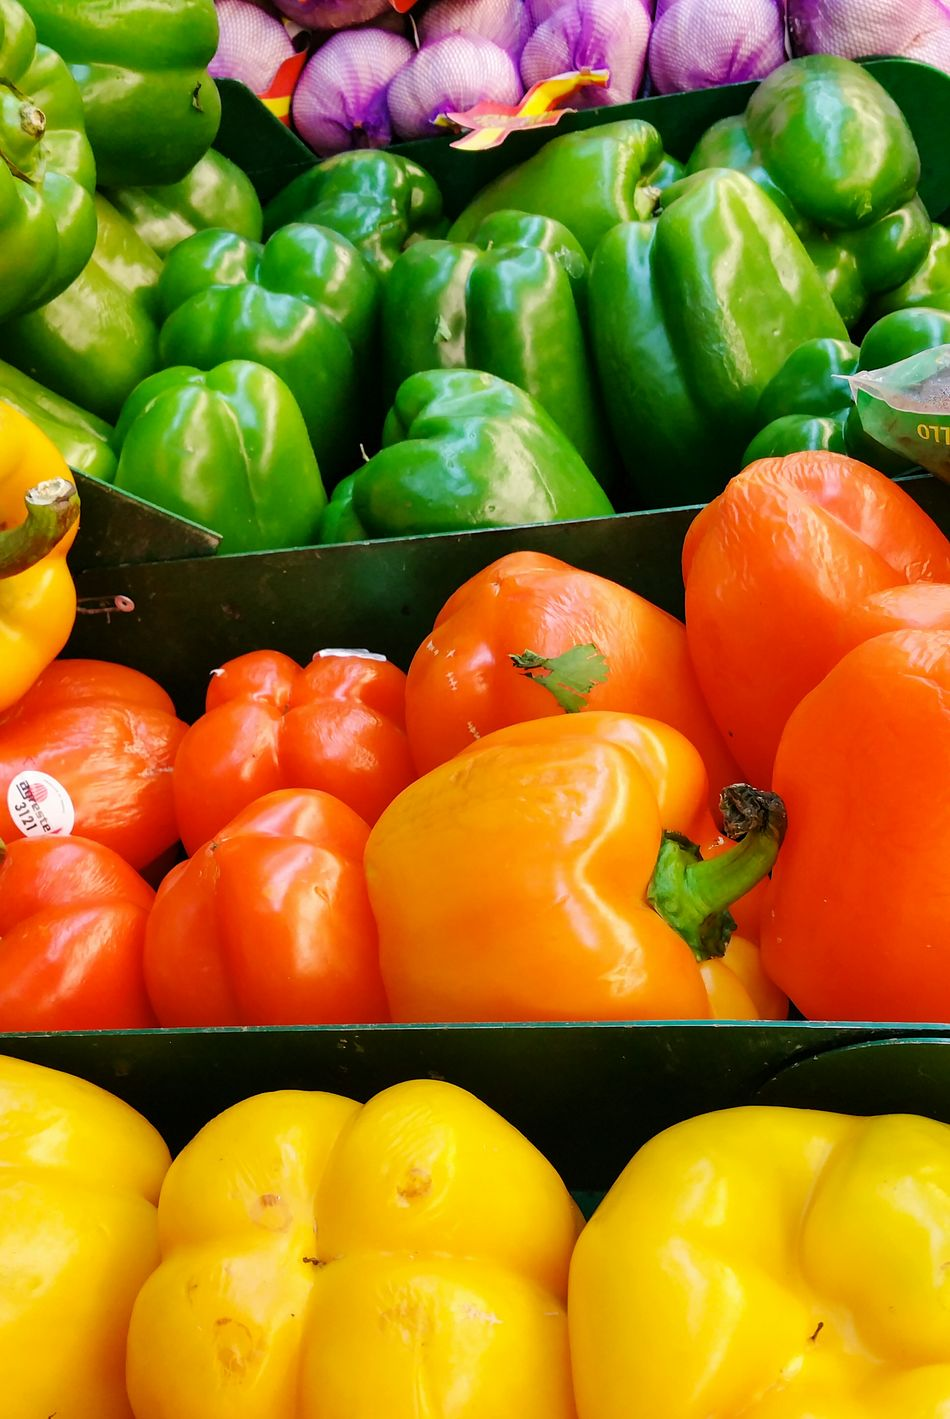 Healthy Lifestyle Food Healthy Eating Vegetable Freshness Close-up Supermarket Caribbean Life Puerto Rico Colorfull